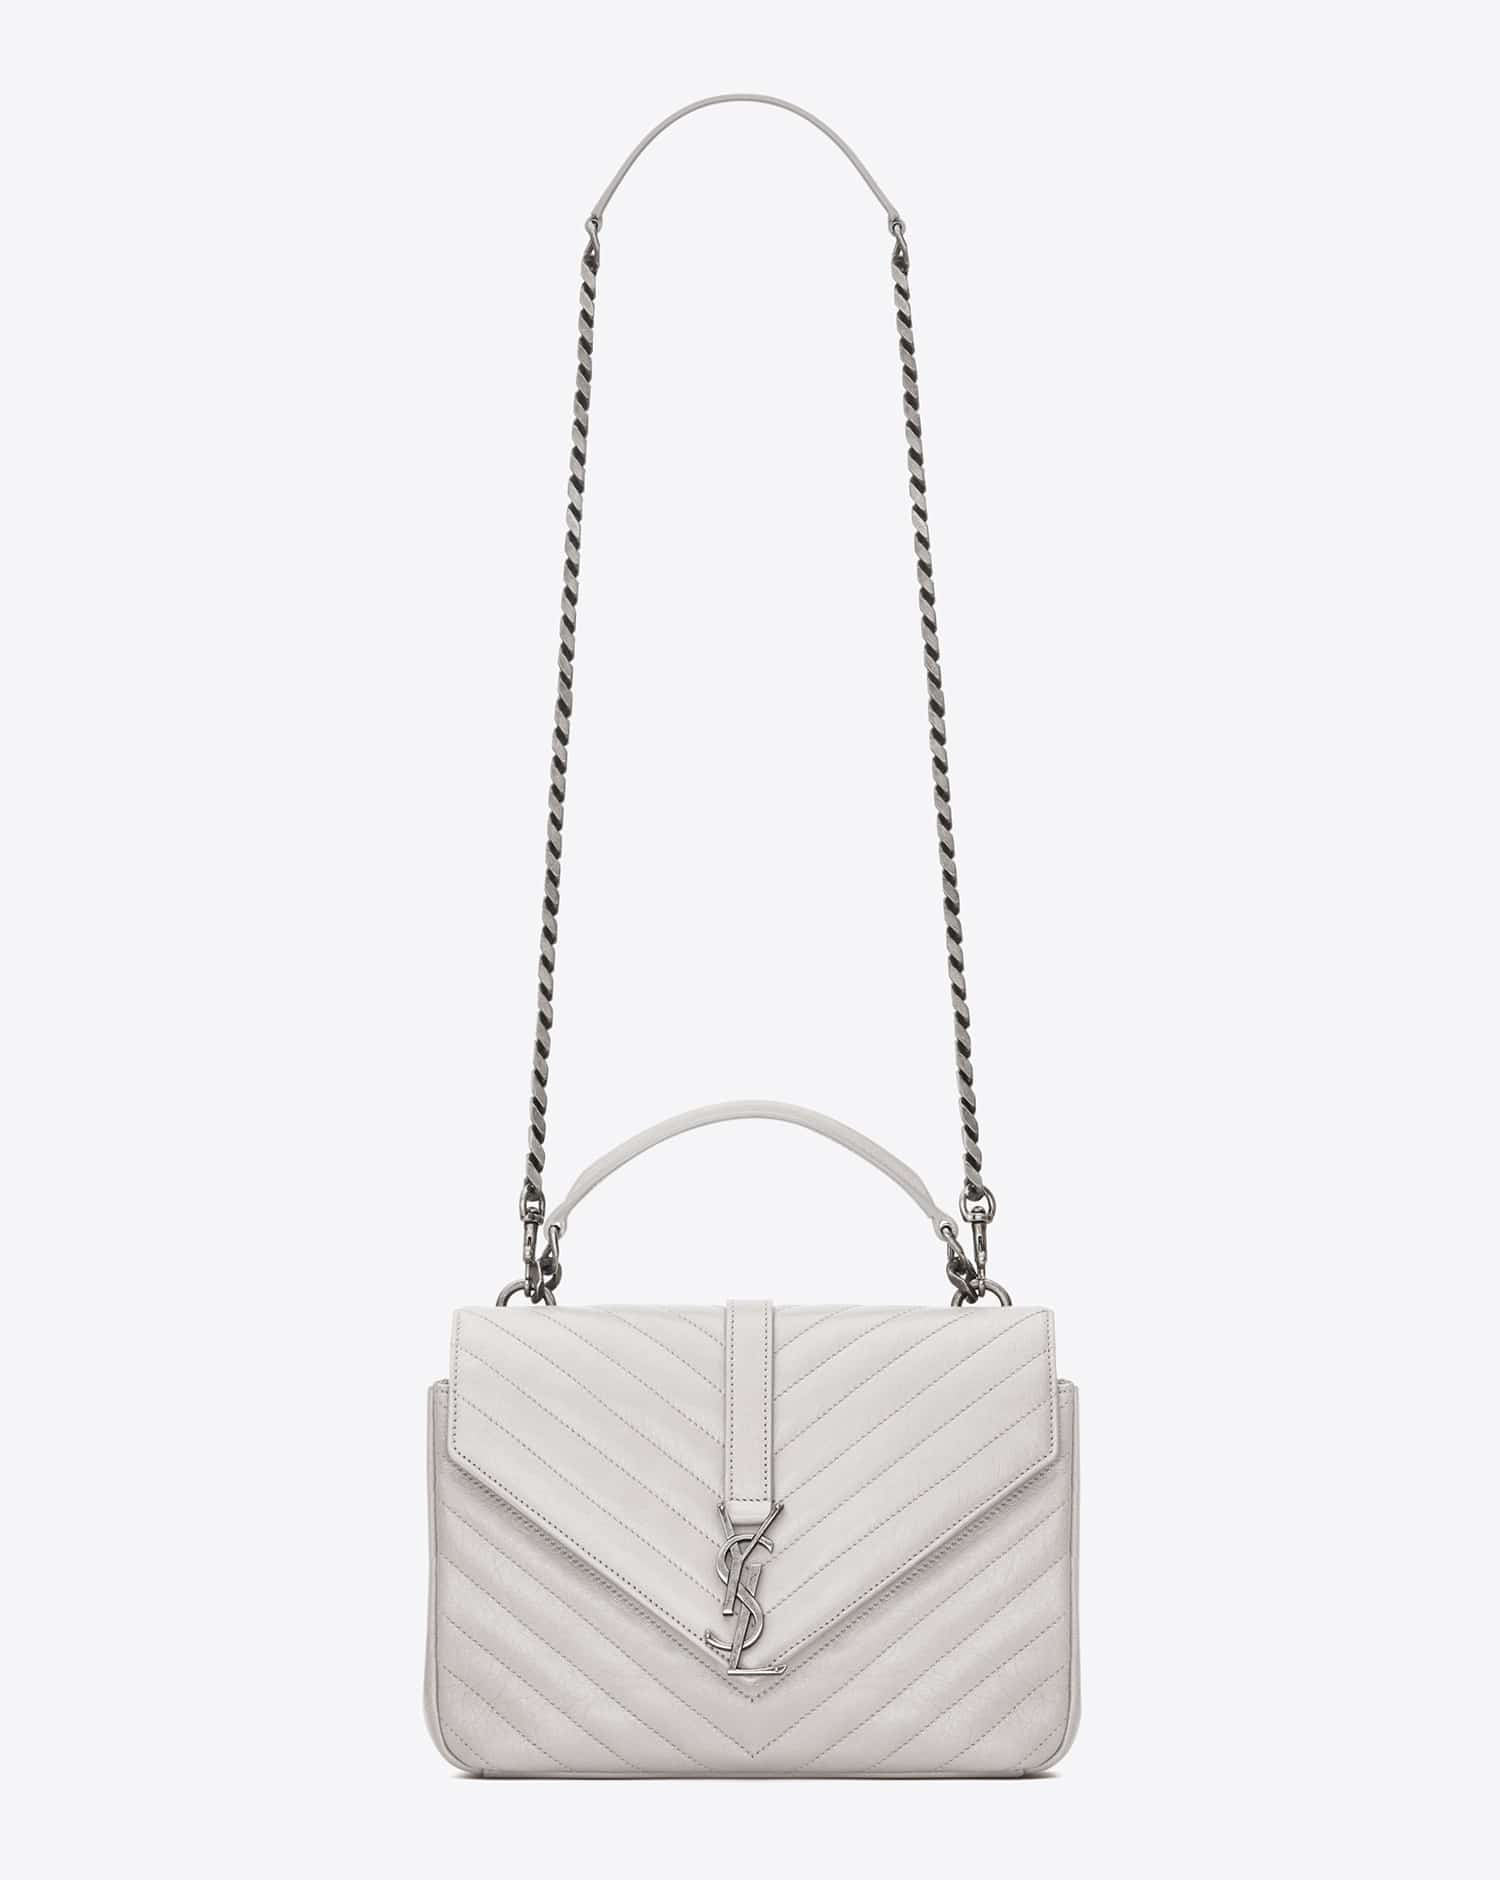 yves saint laurent bags prices - monogram saint laurent blogger bag in powder pink leather